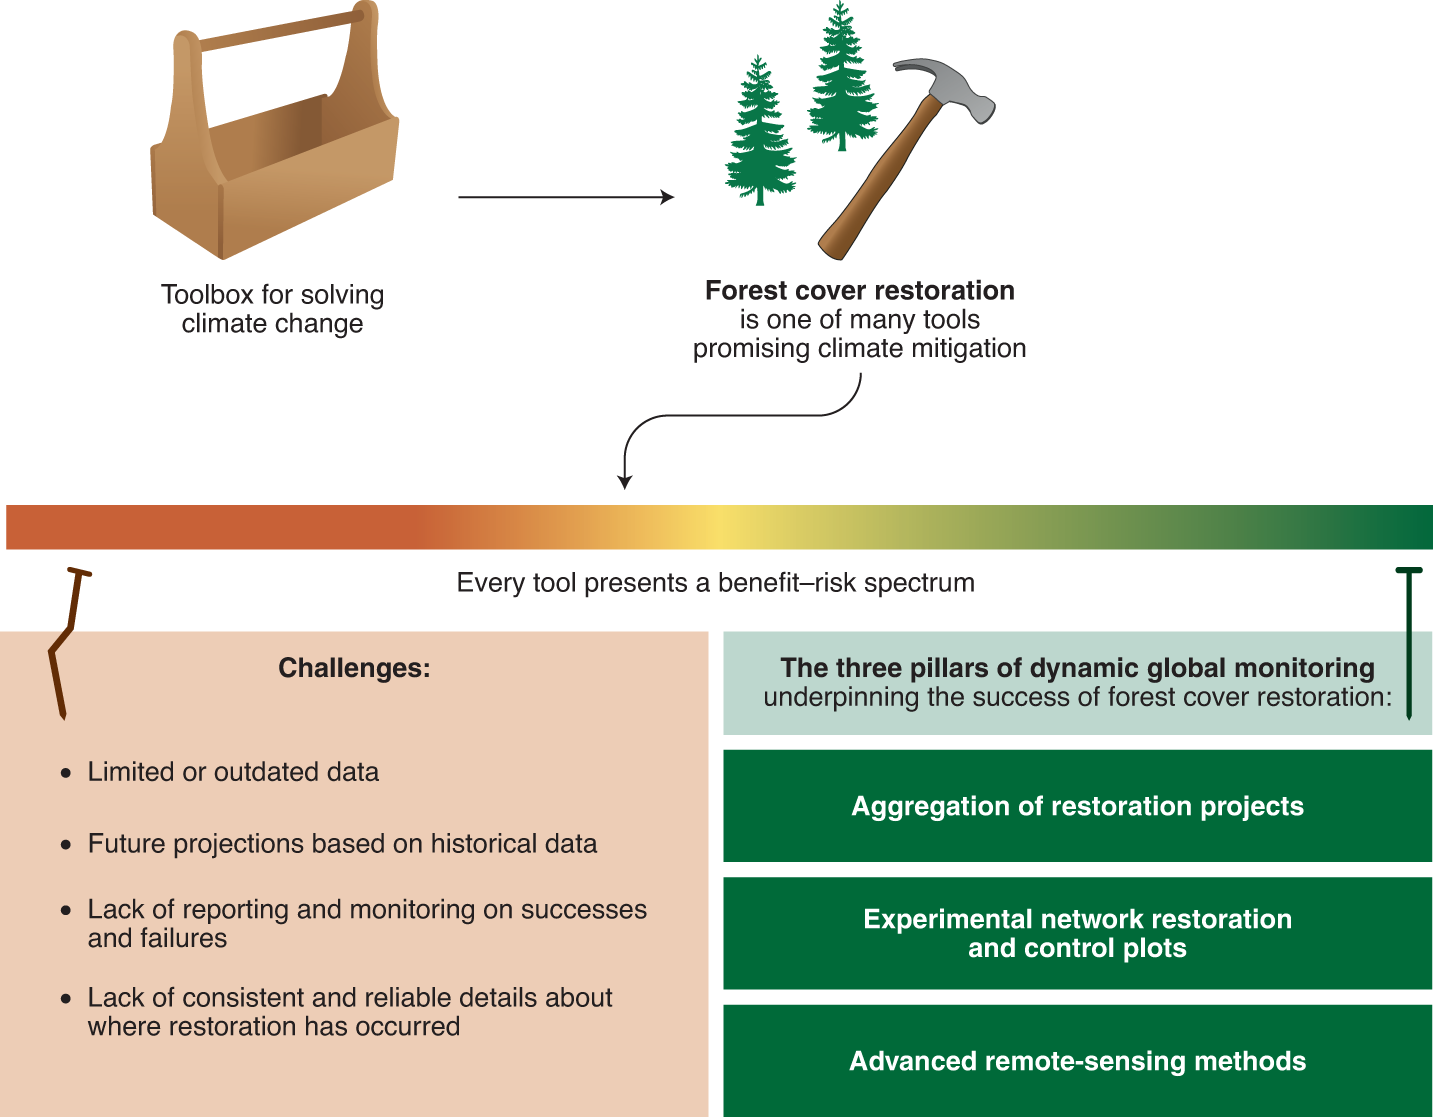 Dynamic global monitoring needed to use restoration of forest cover as